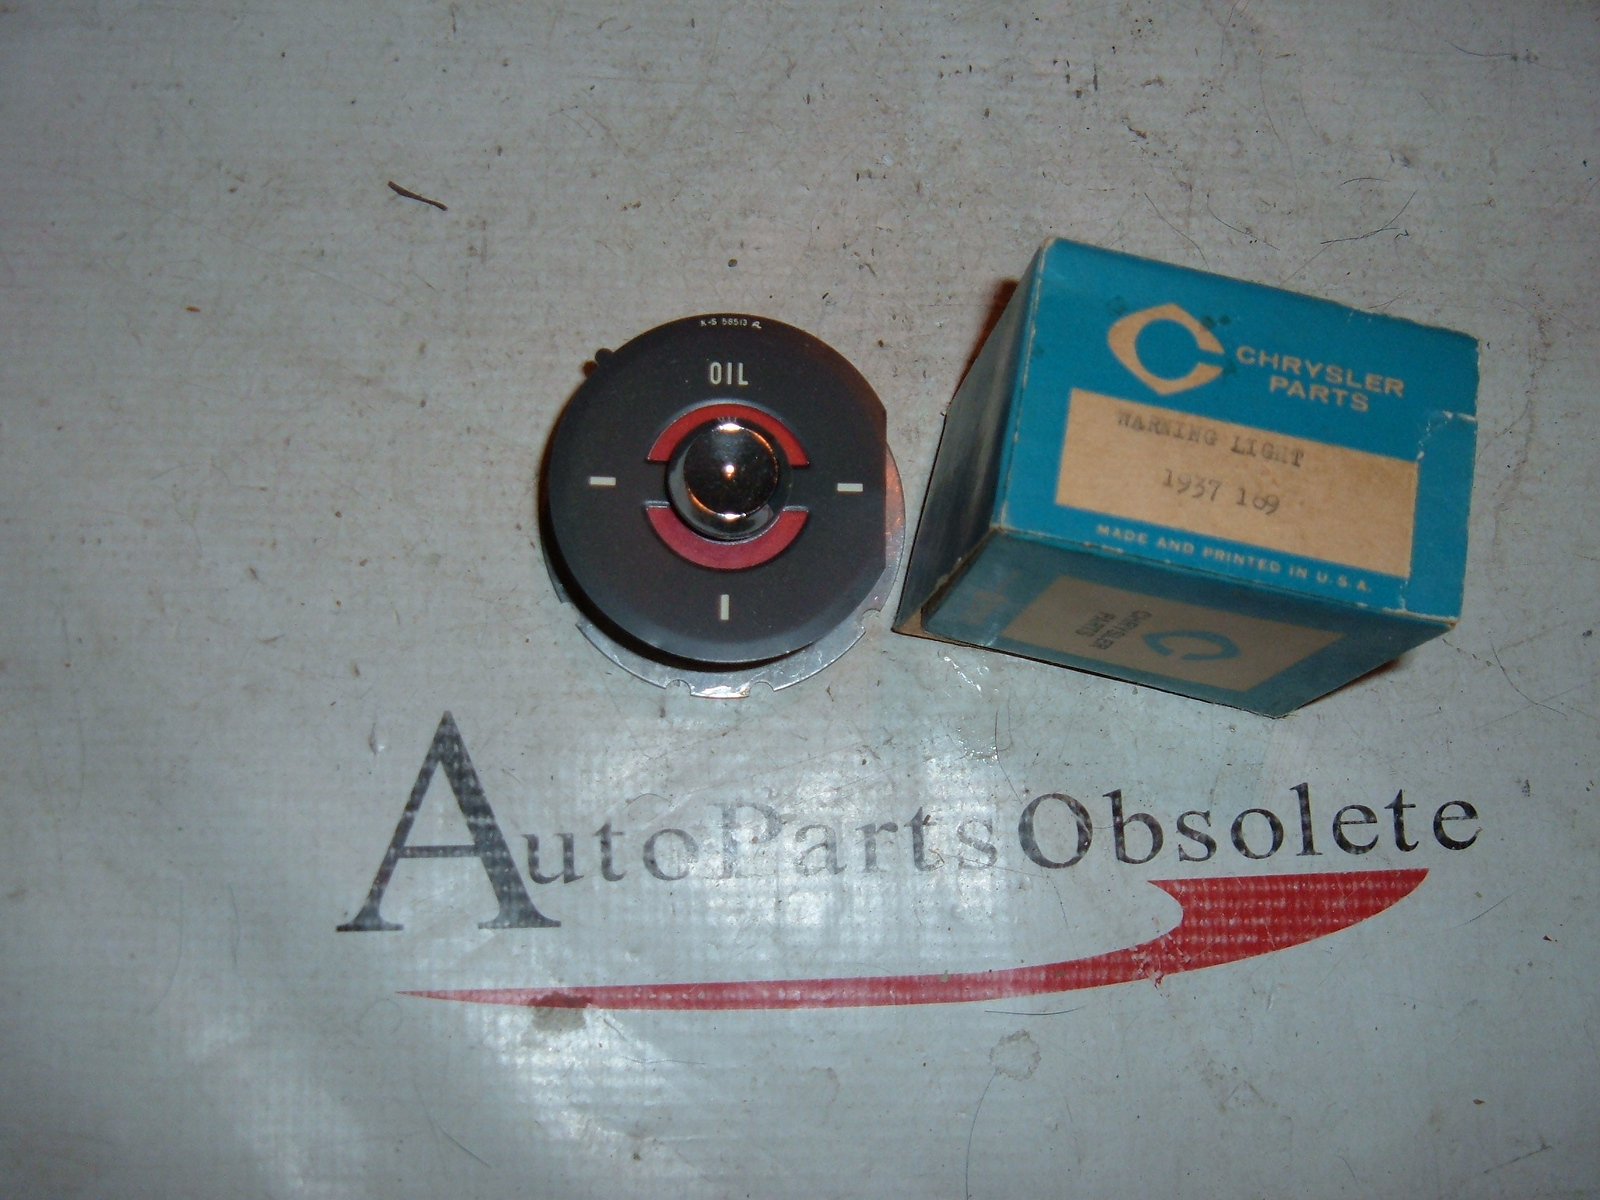 1959 60 61 62 63 64 65 66 dodge truck oil pressure dash gauge nos 1937169 (z 1937169)